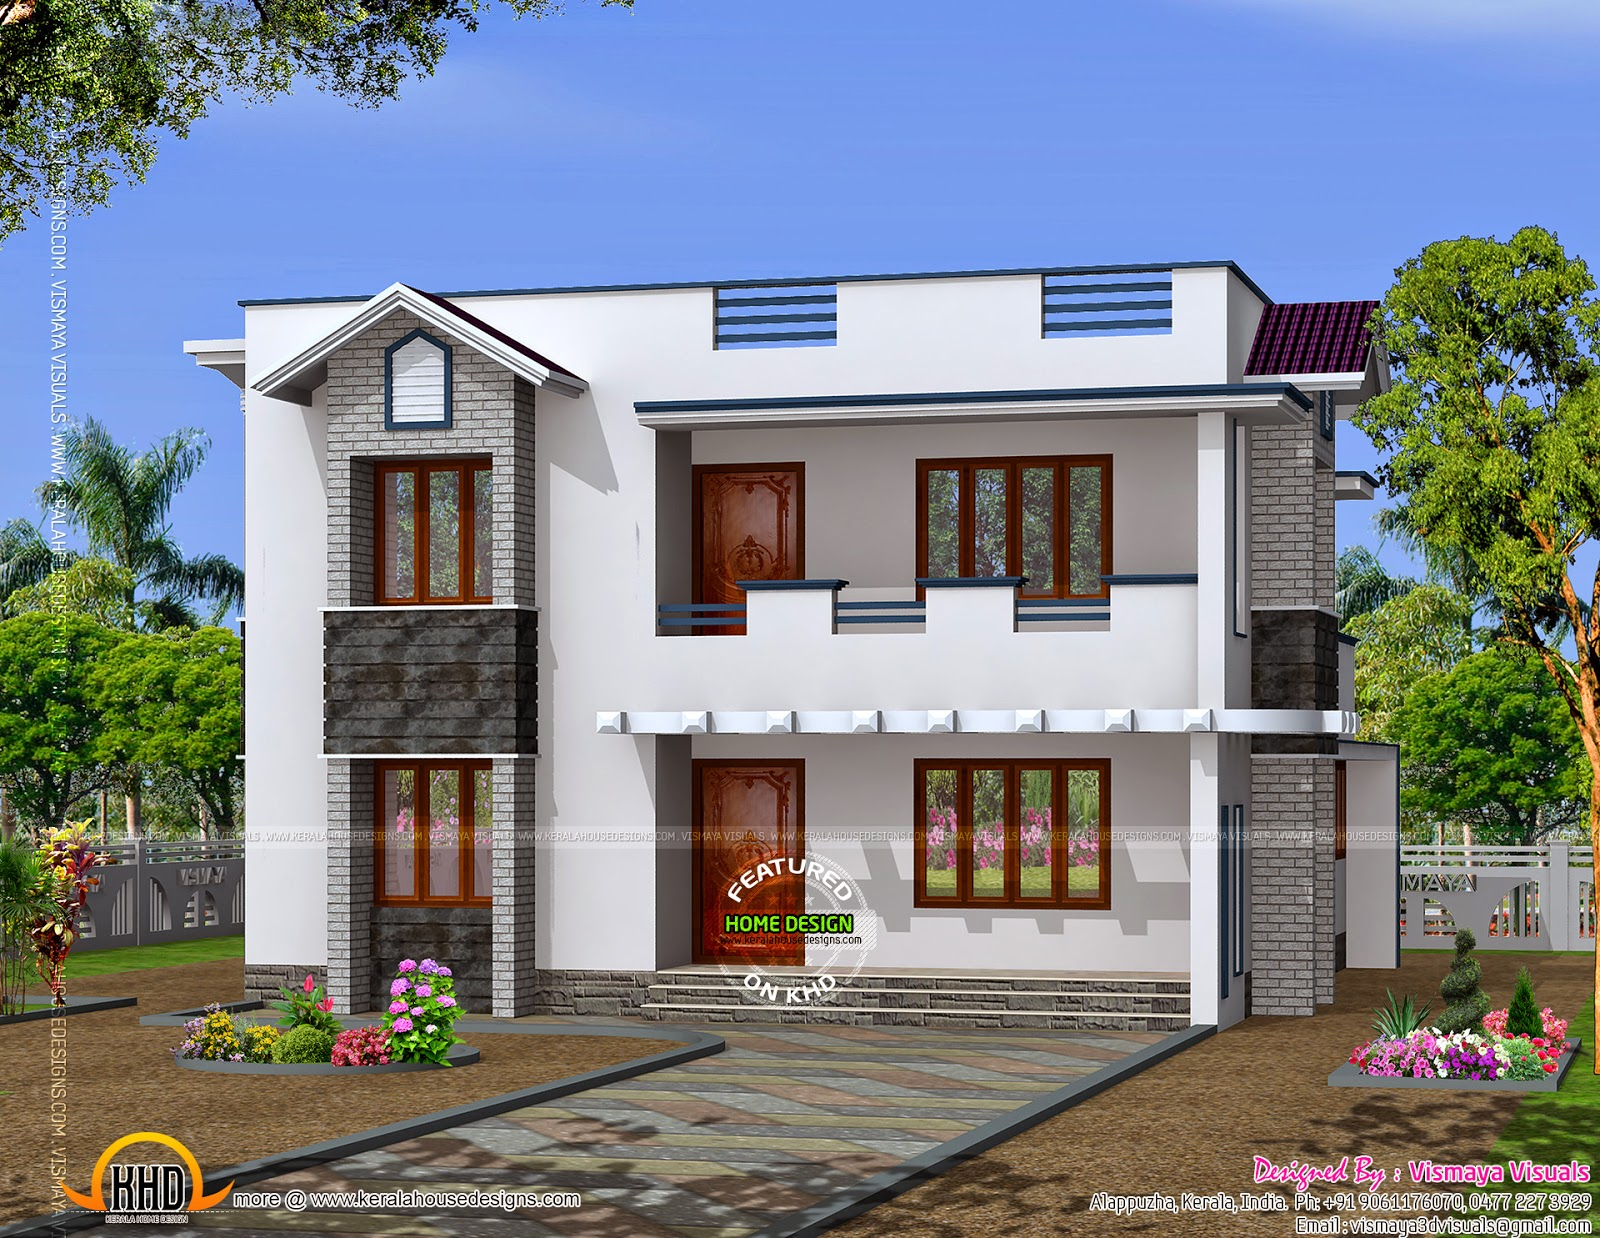 Simple design home kerala home design and floor plans Simple house designs indian style